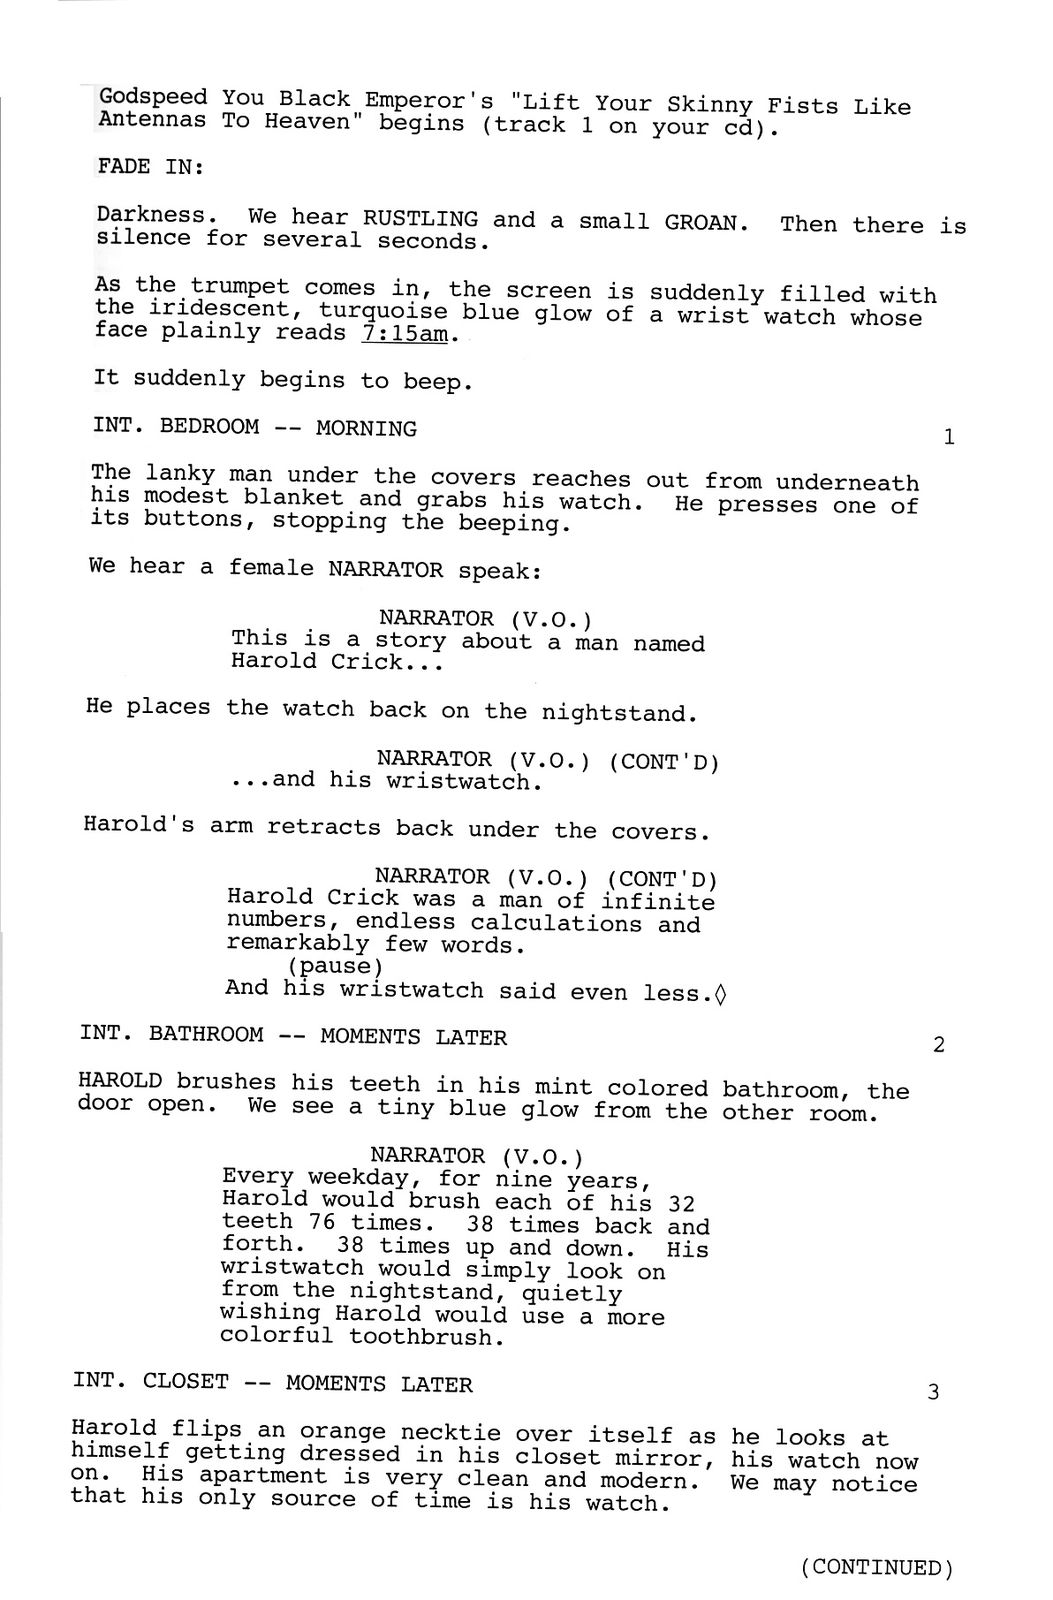 How to write a screenplay for animation